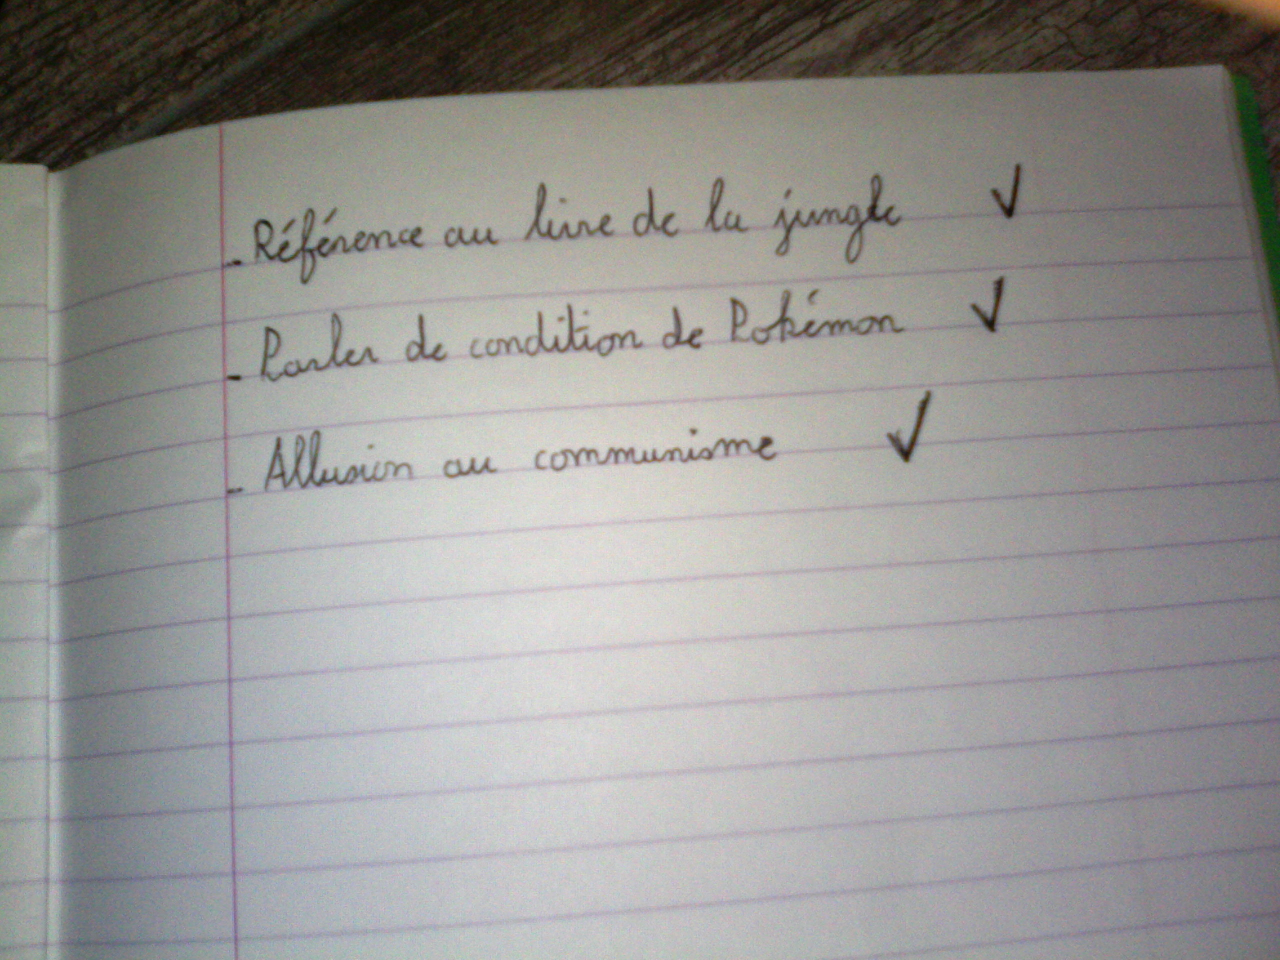 Todolist de l'article par l'auteur dudit article